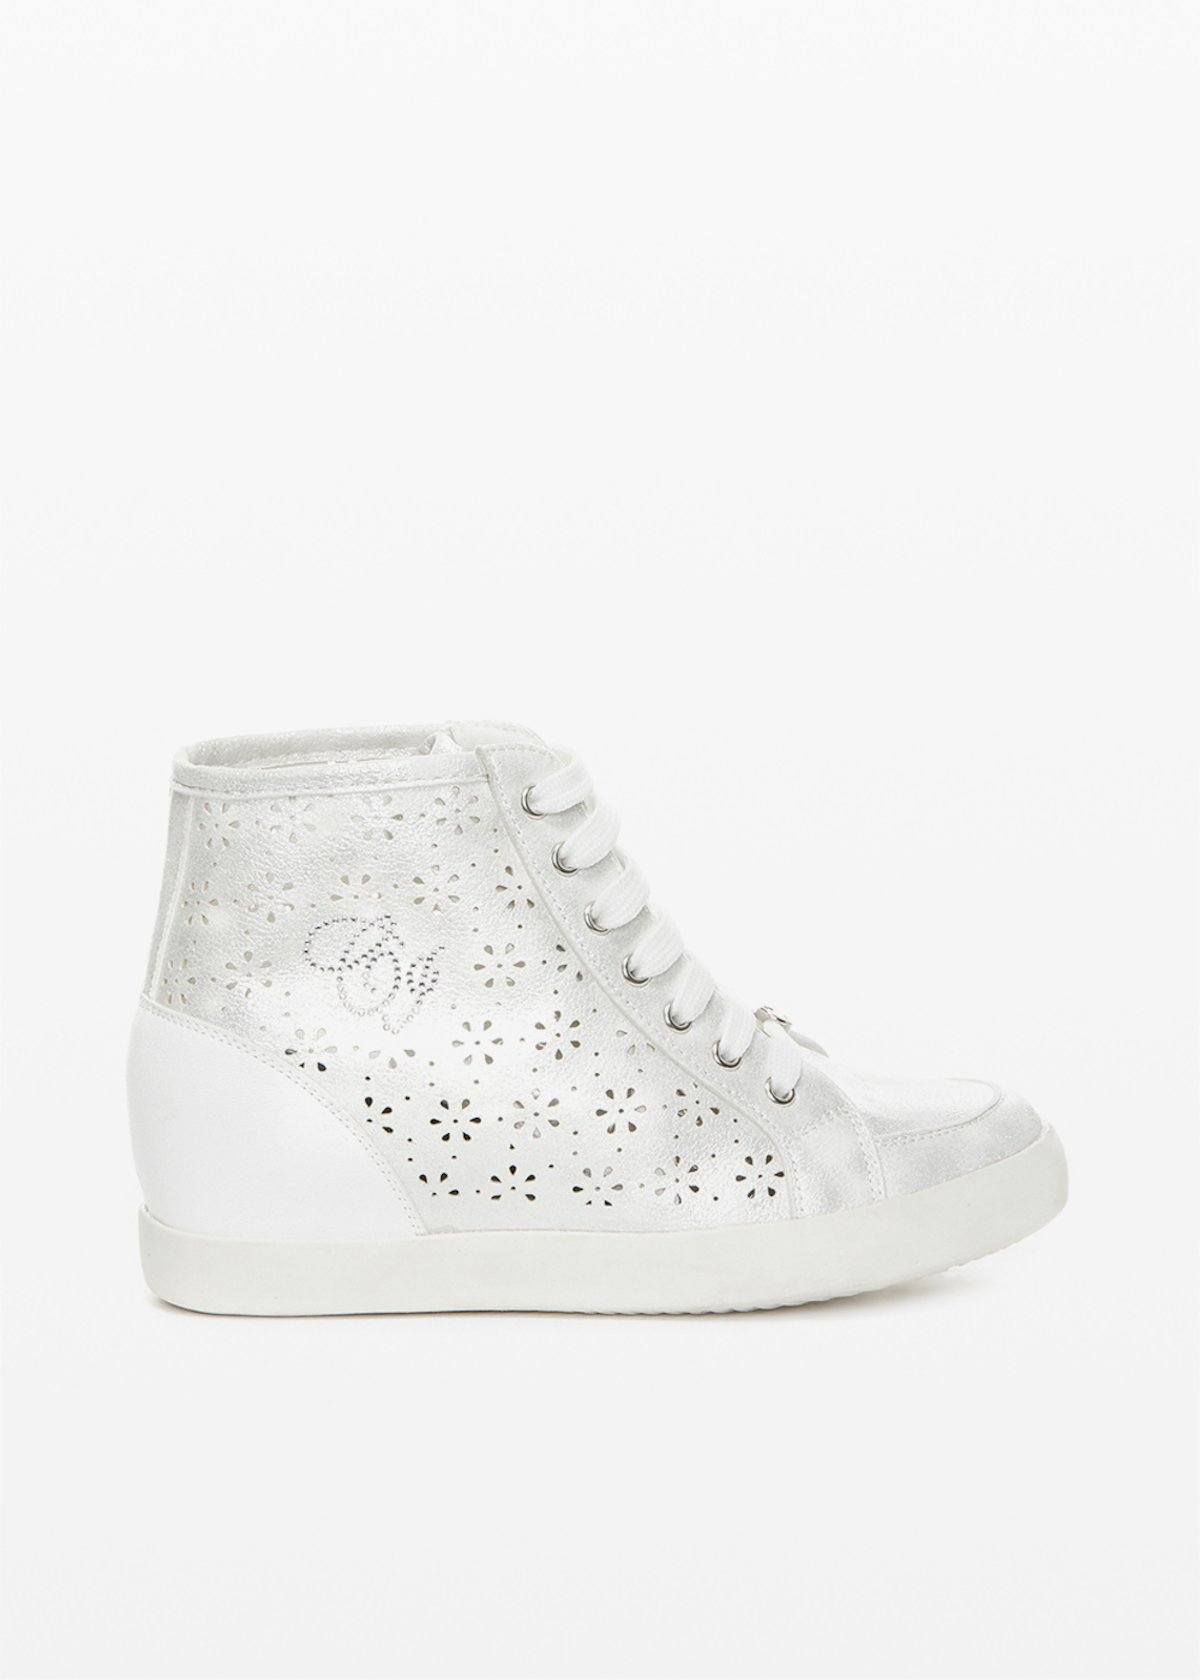 Shery perforated faux leather sneakers - Silver - Woman - Category image